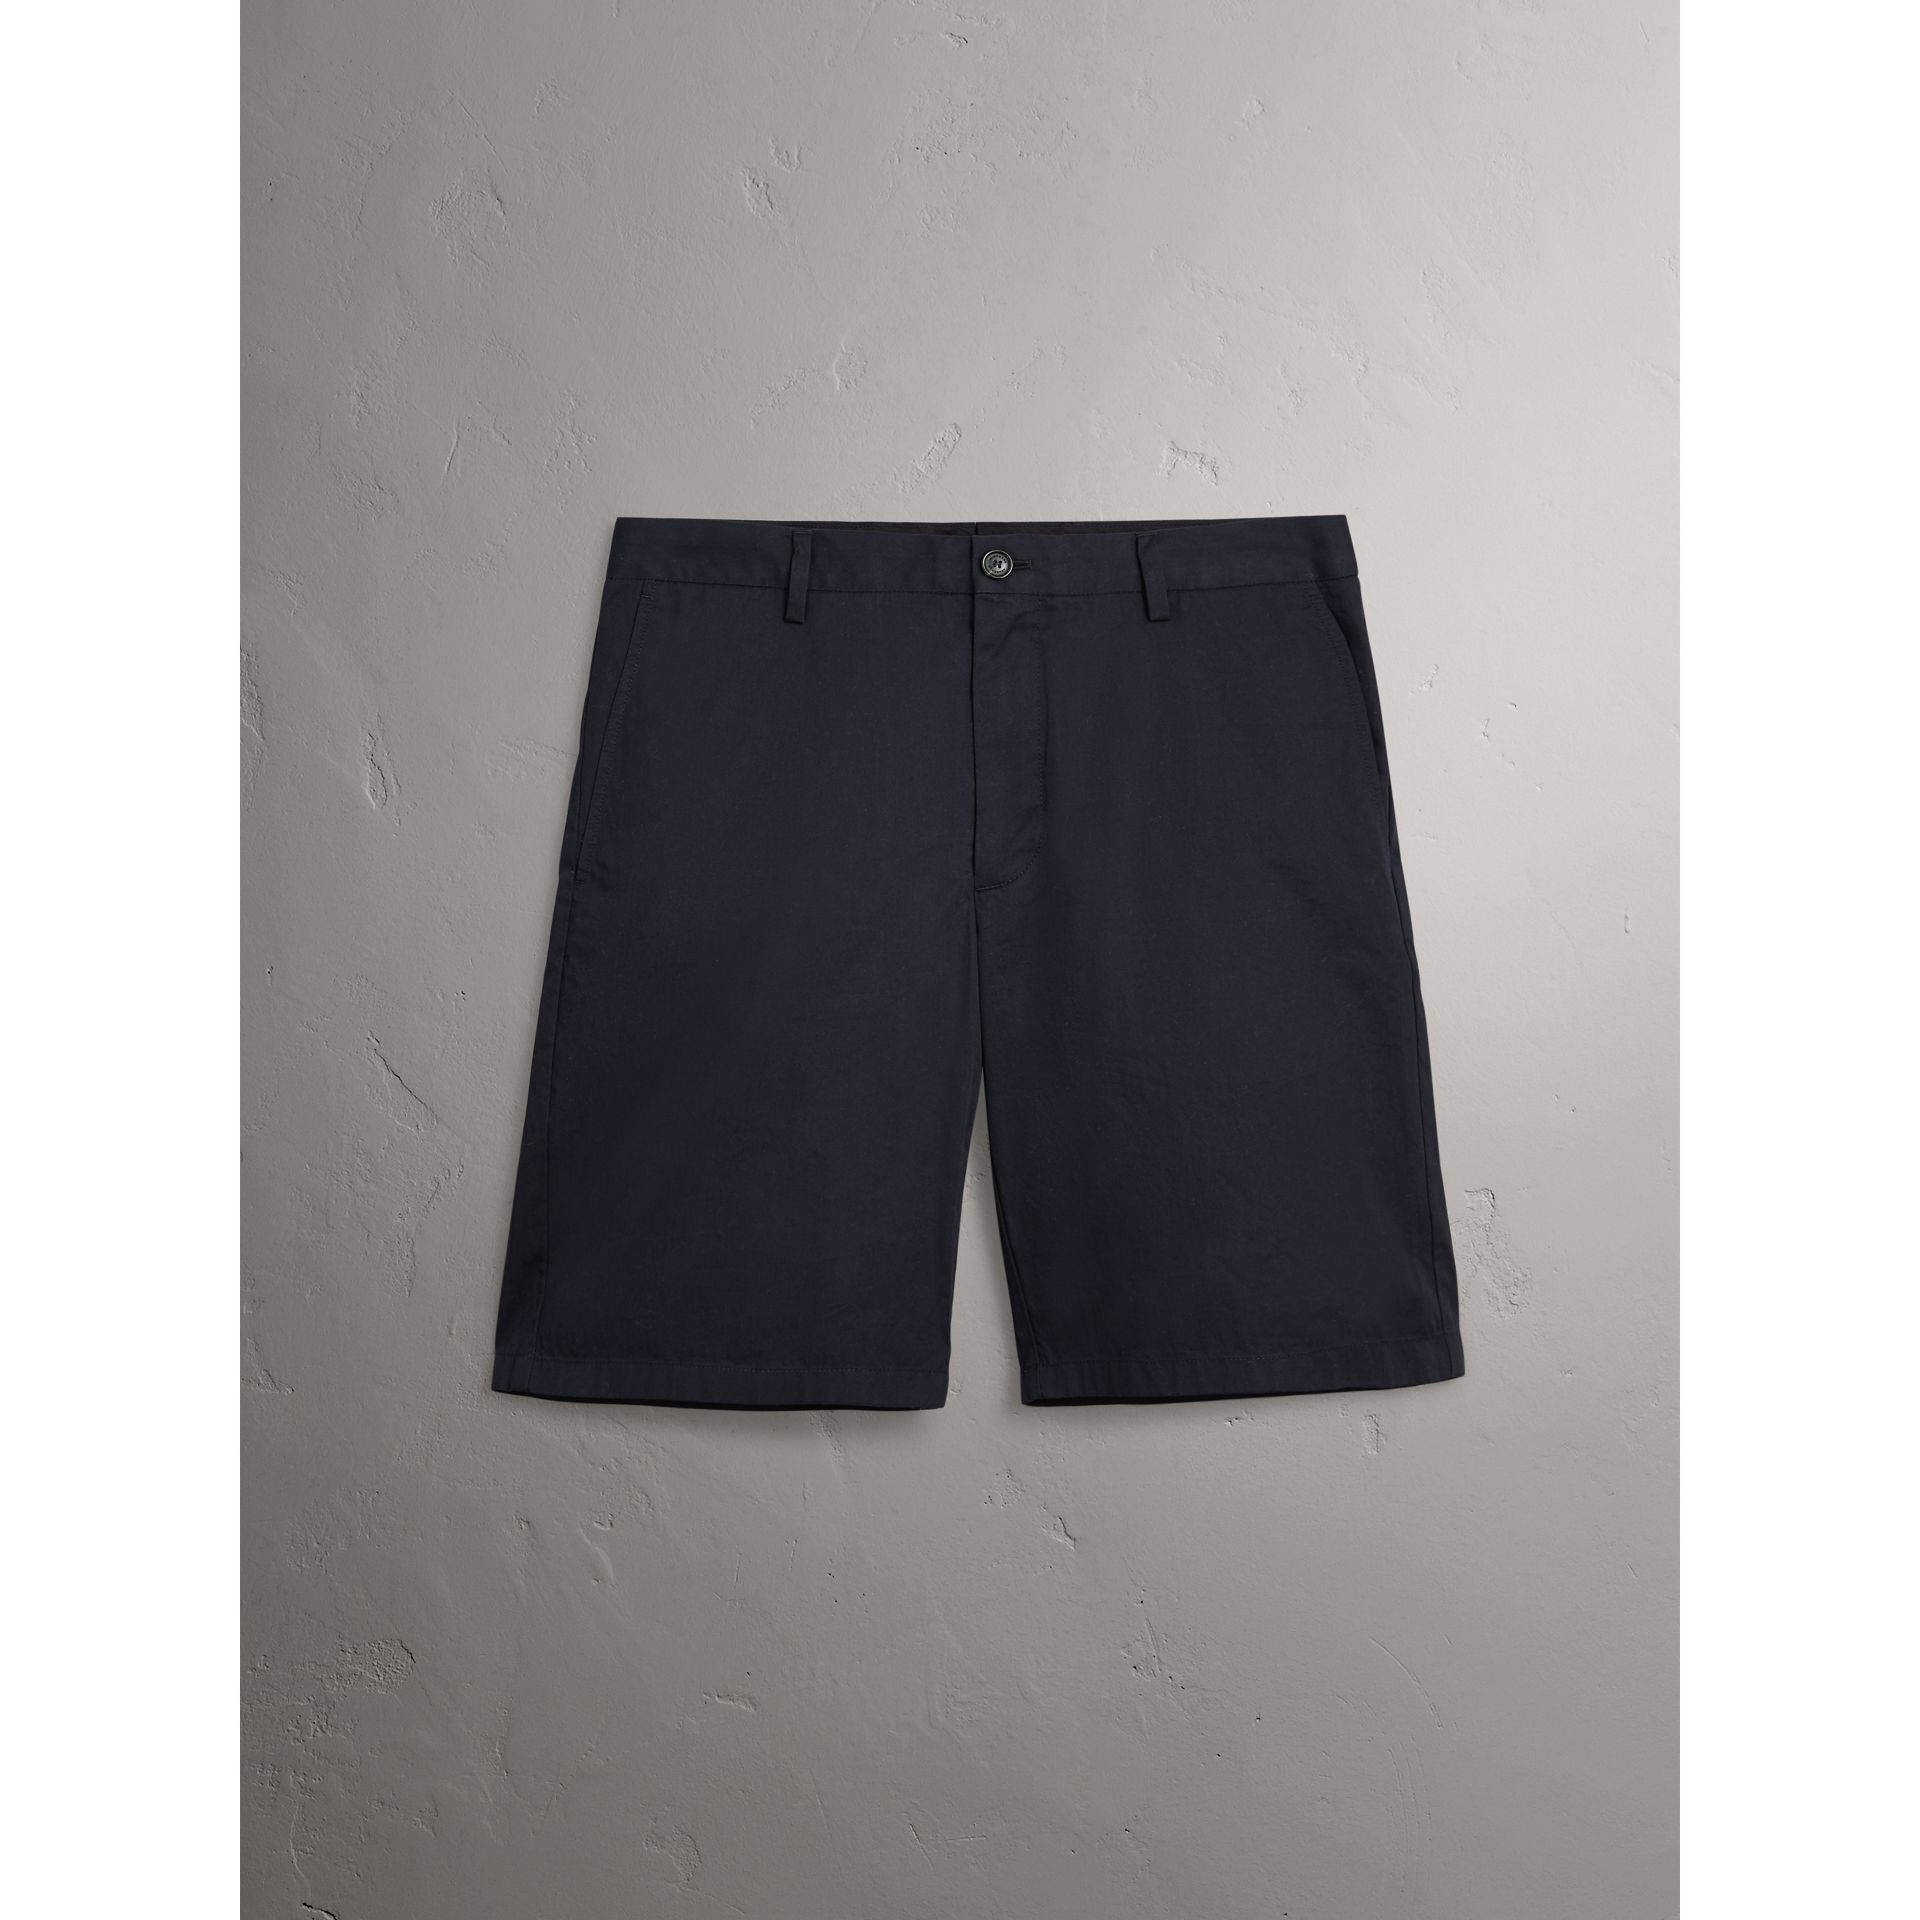 Burberry Ink Cotton Twill Chino Shorts